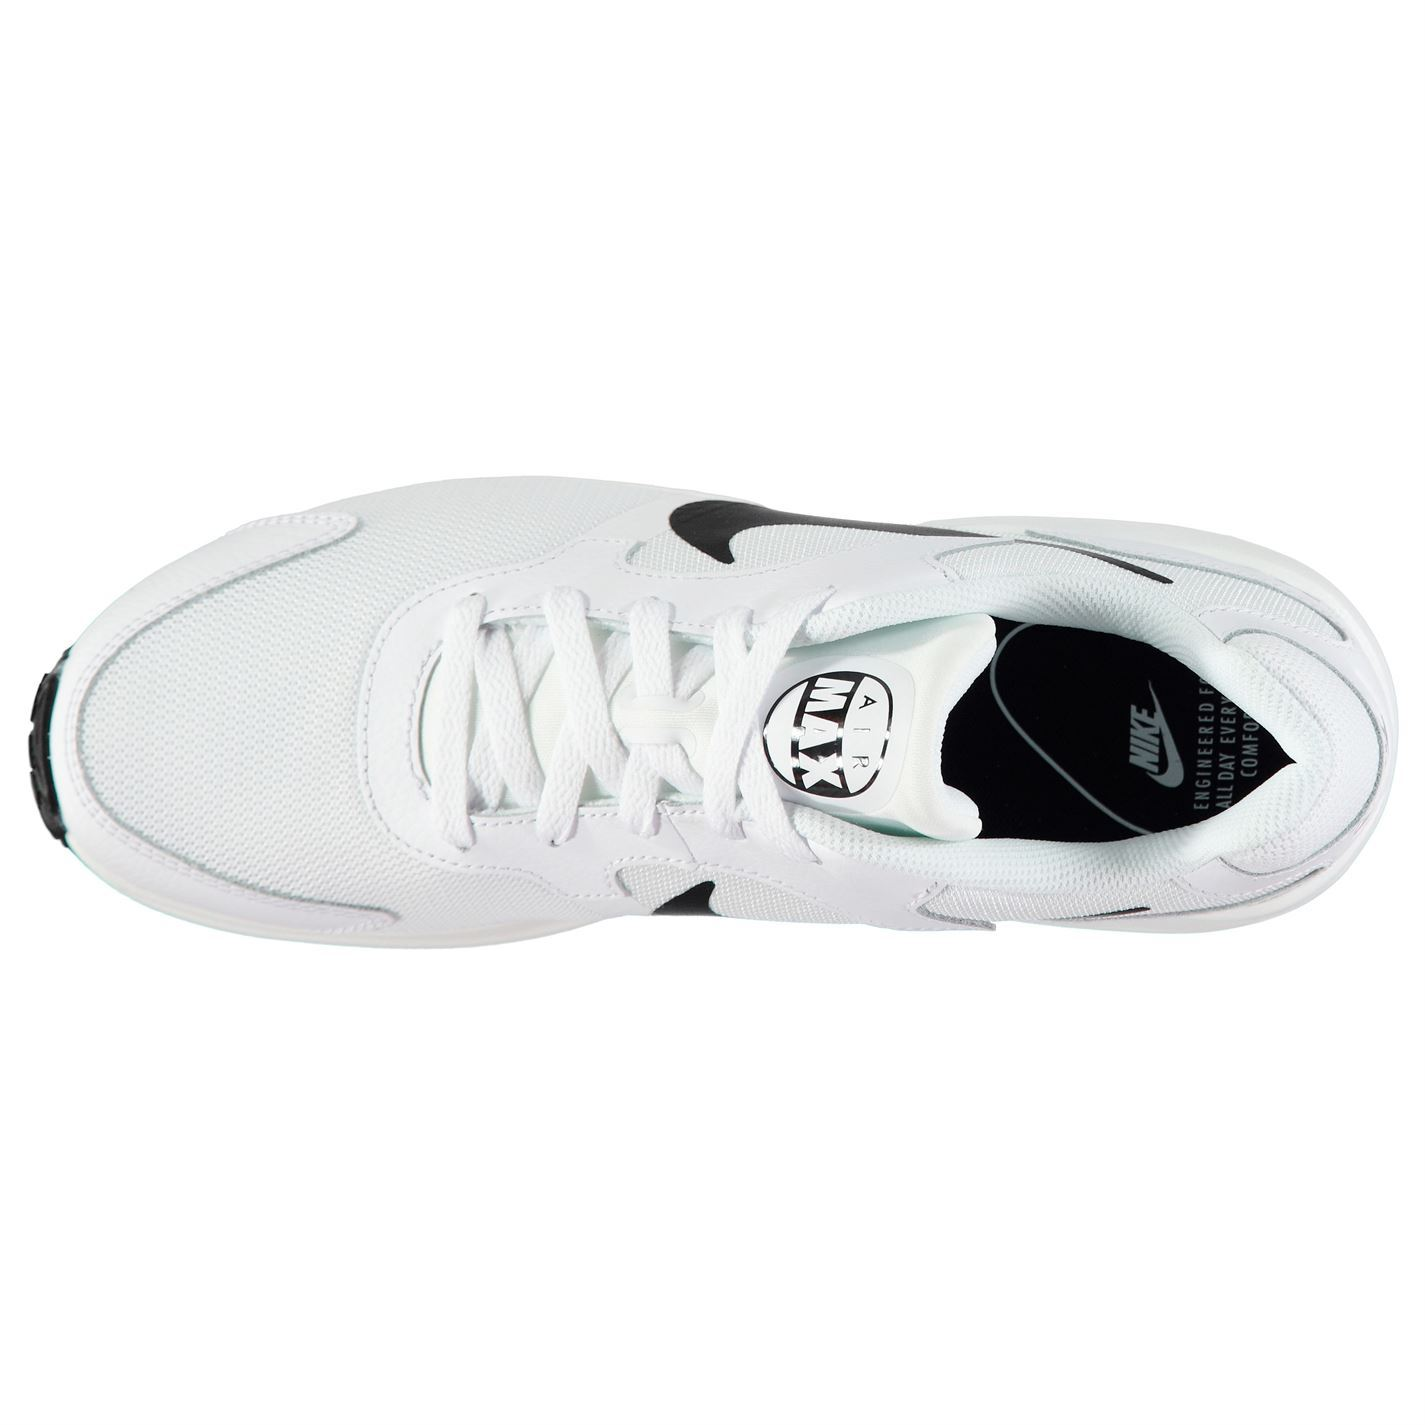 f7009e70255 ... hot nike air max guile trainers mens white black athletic sneakers shoes  a7e1a b8744